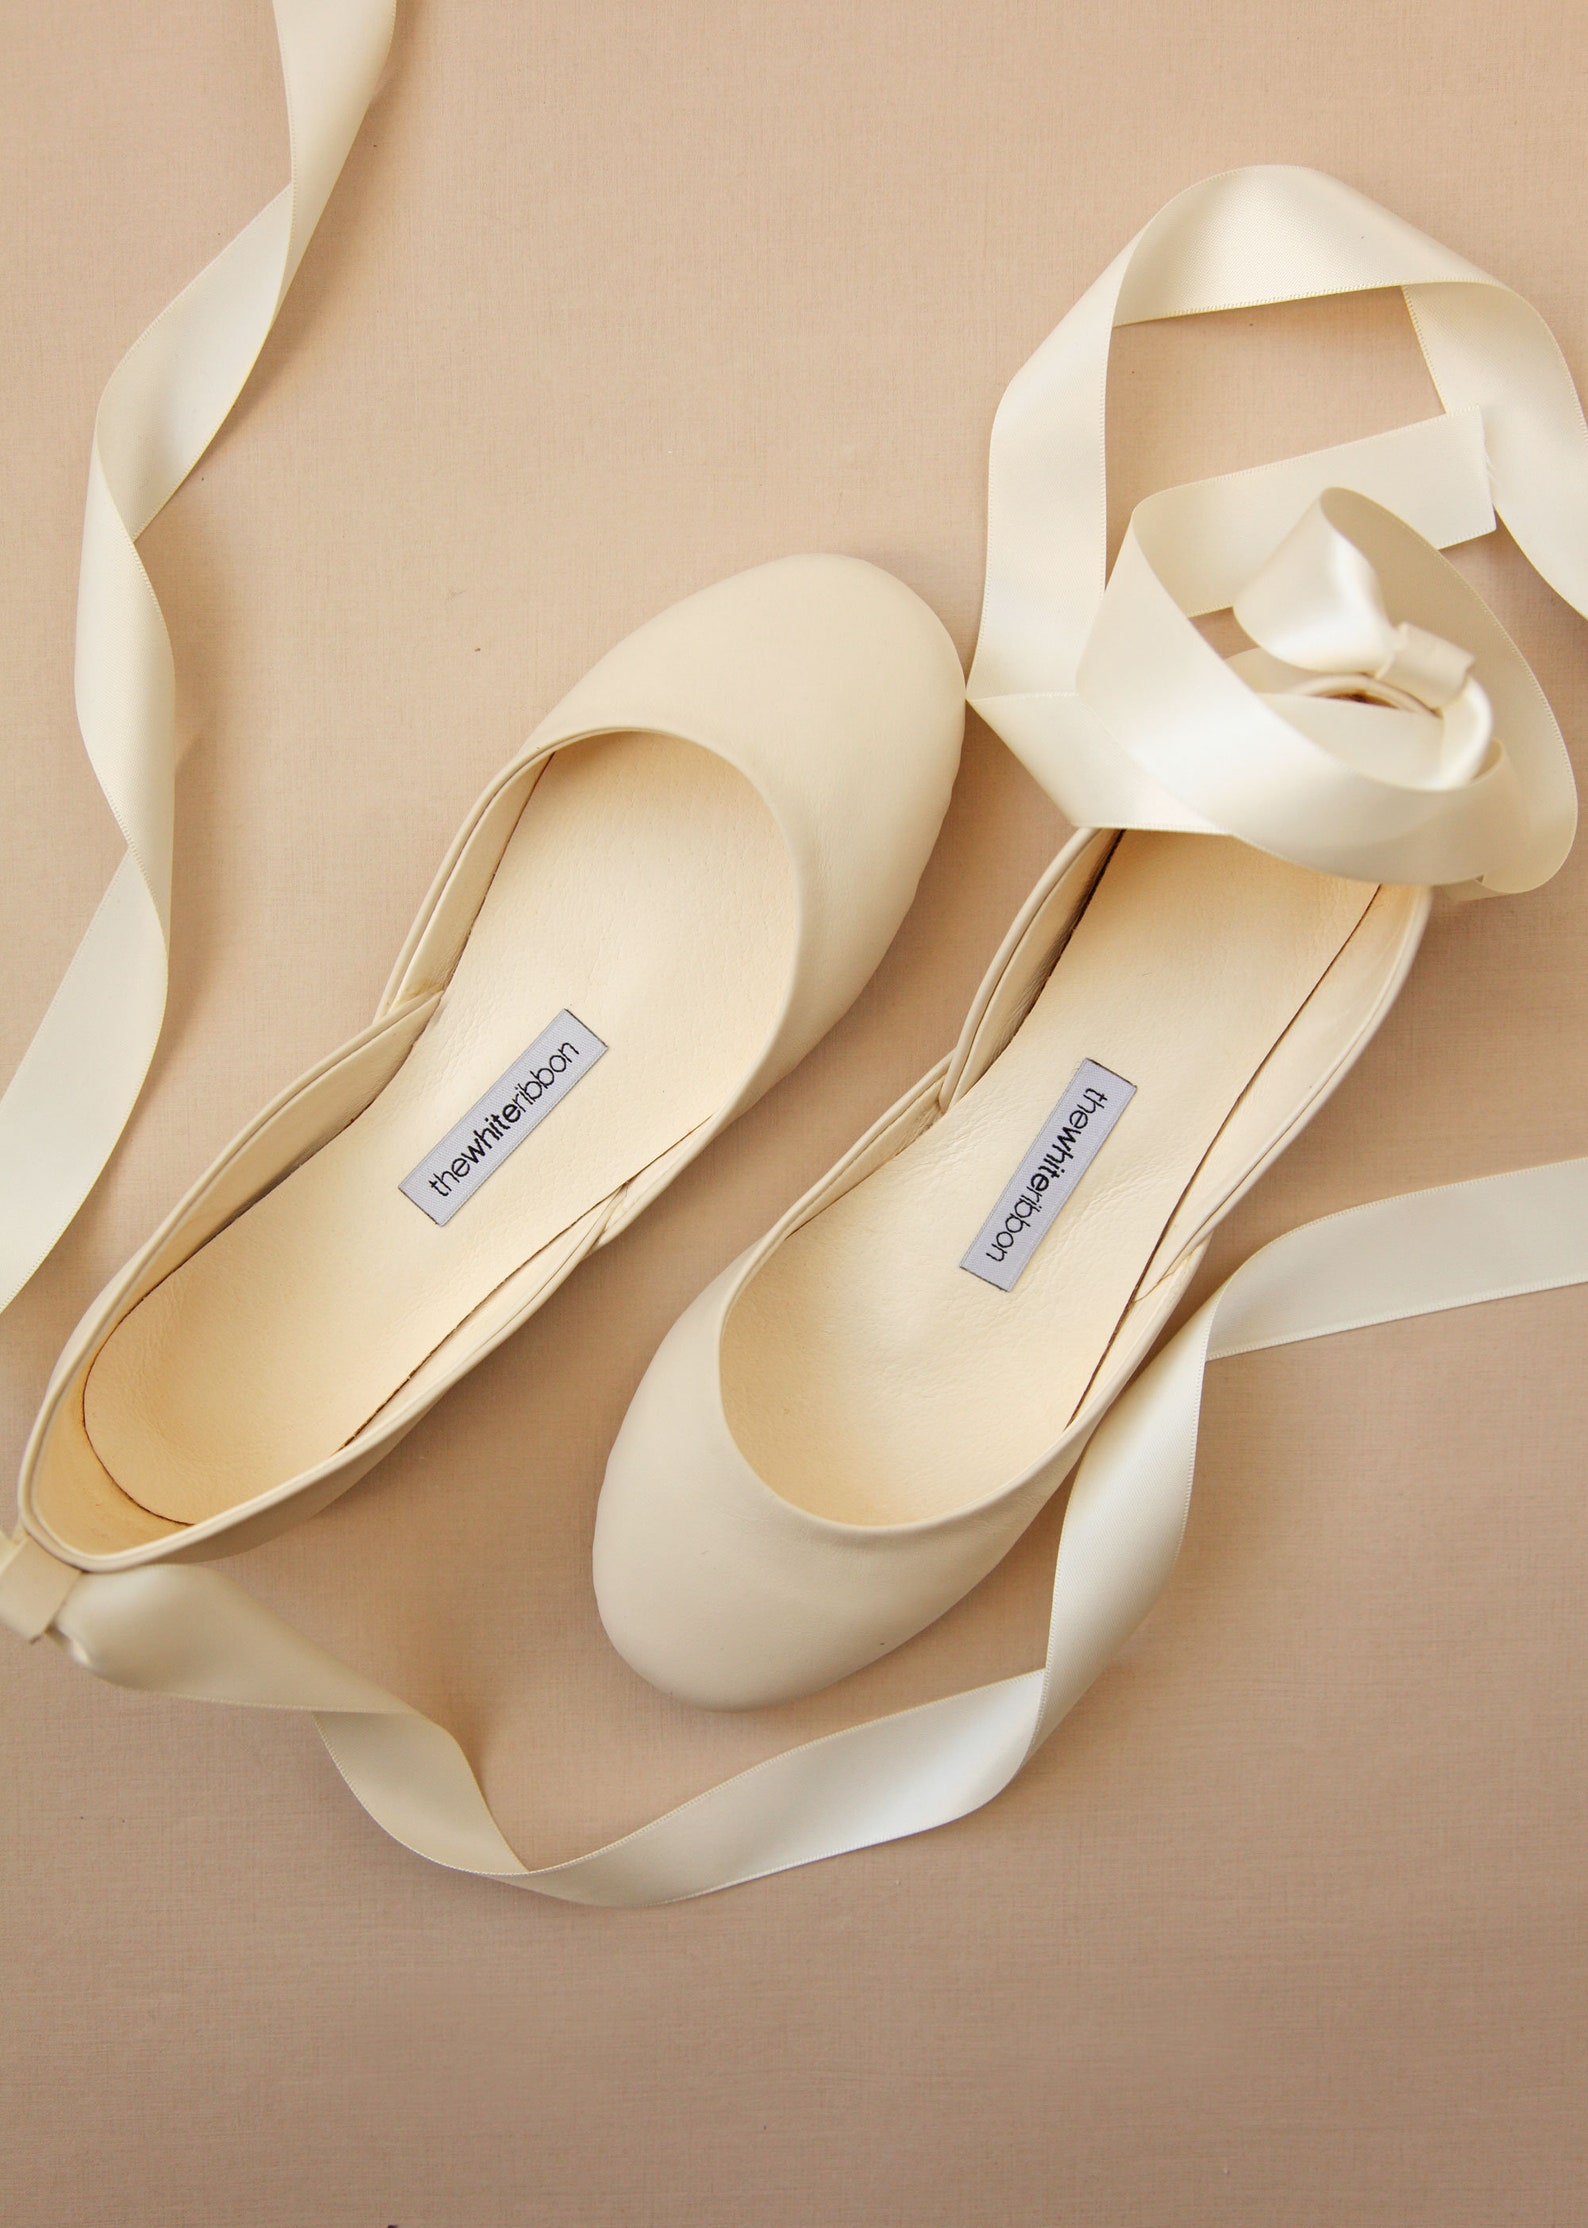 the bridal ballet flats | wedding shoes with satin ribbons | ivory leather bridal flats | vanilla ivory |ready to ship